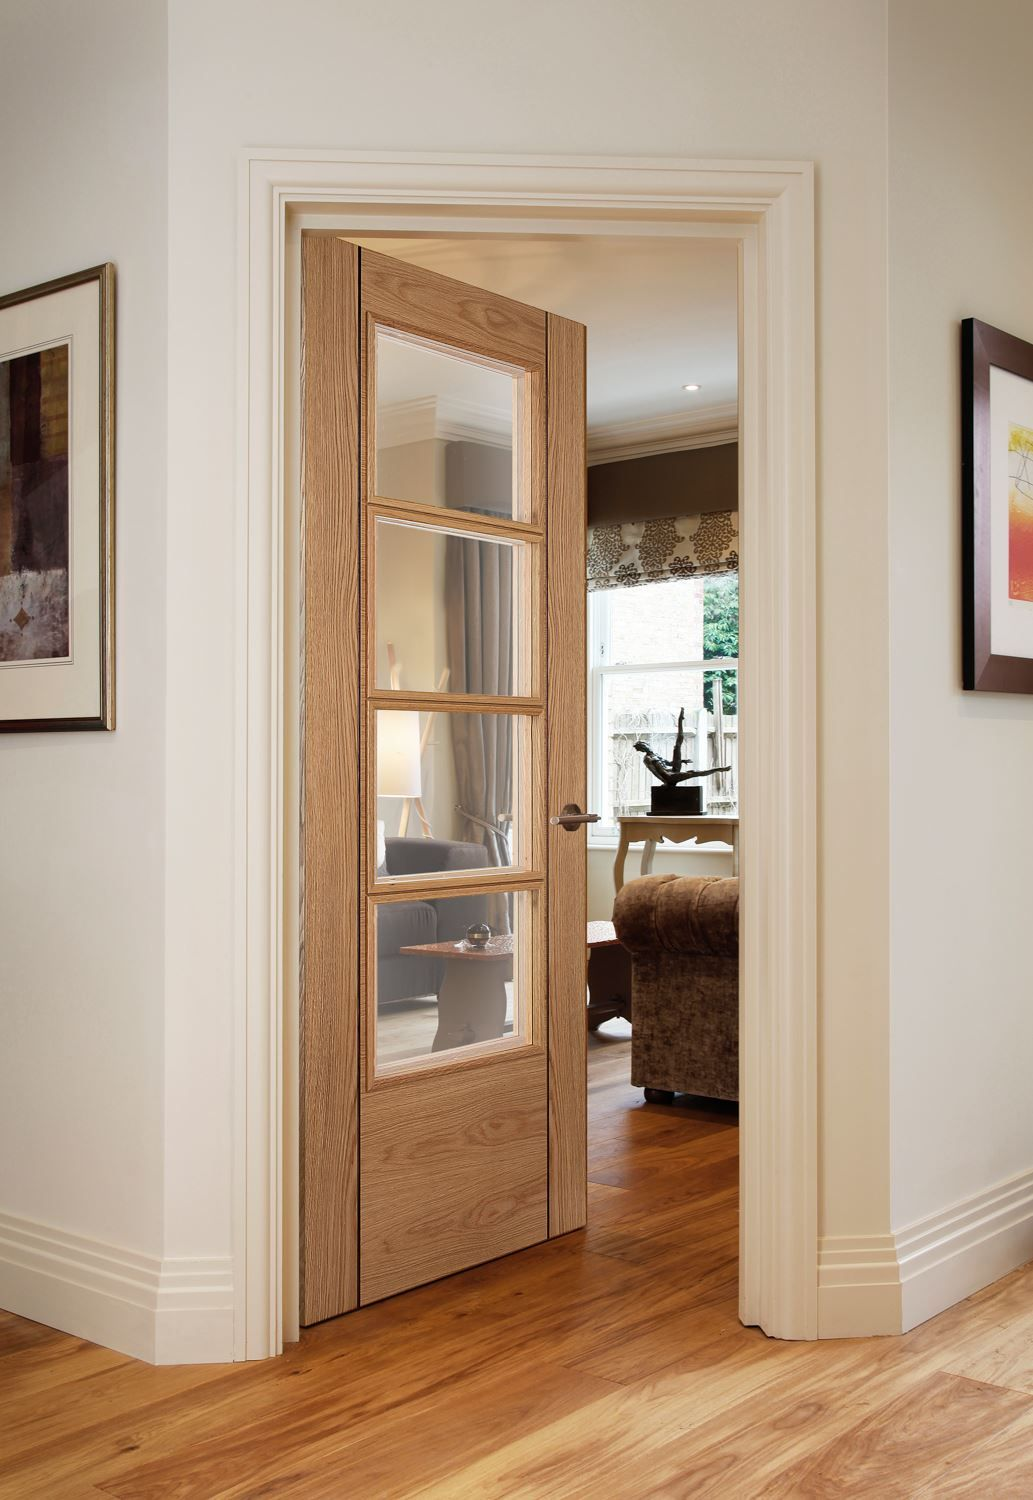 Wooden Internal Doors With: Oak Interior Doors, Doors